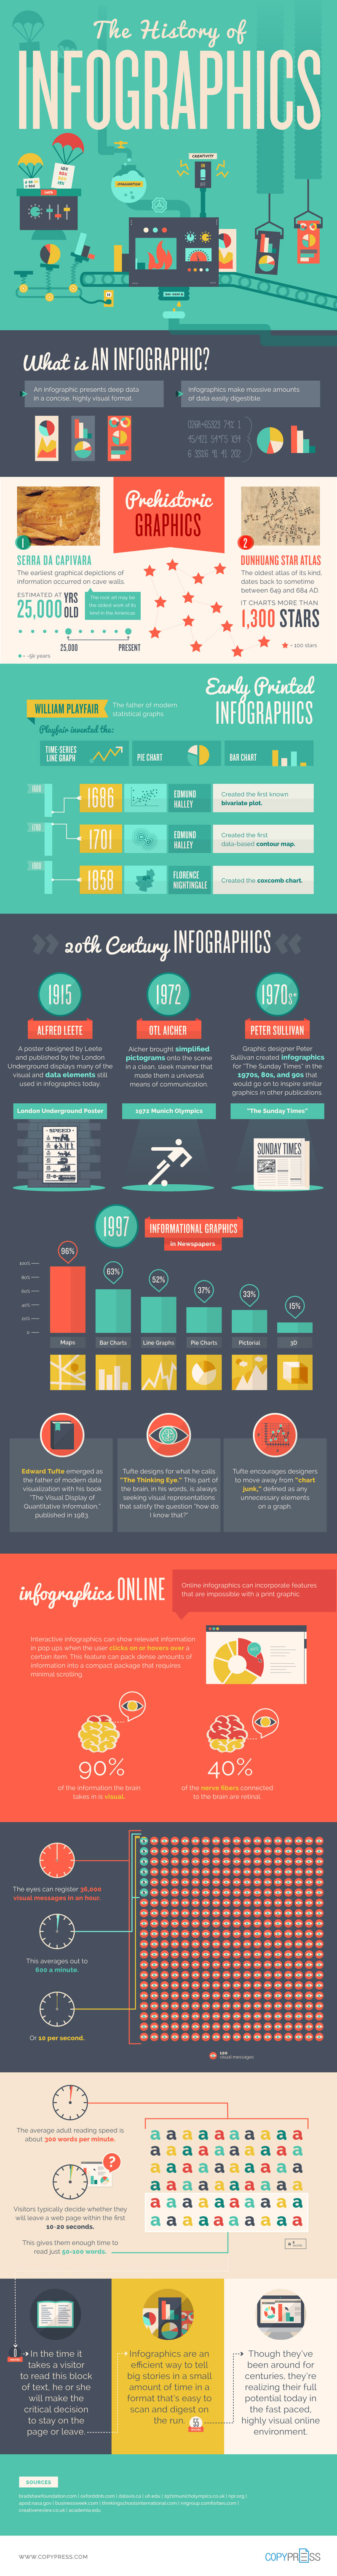 The history of infographics - Infographic